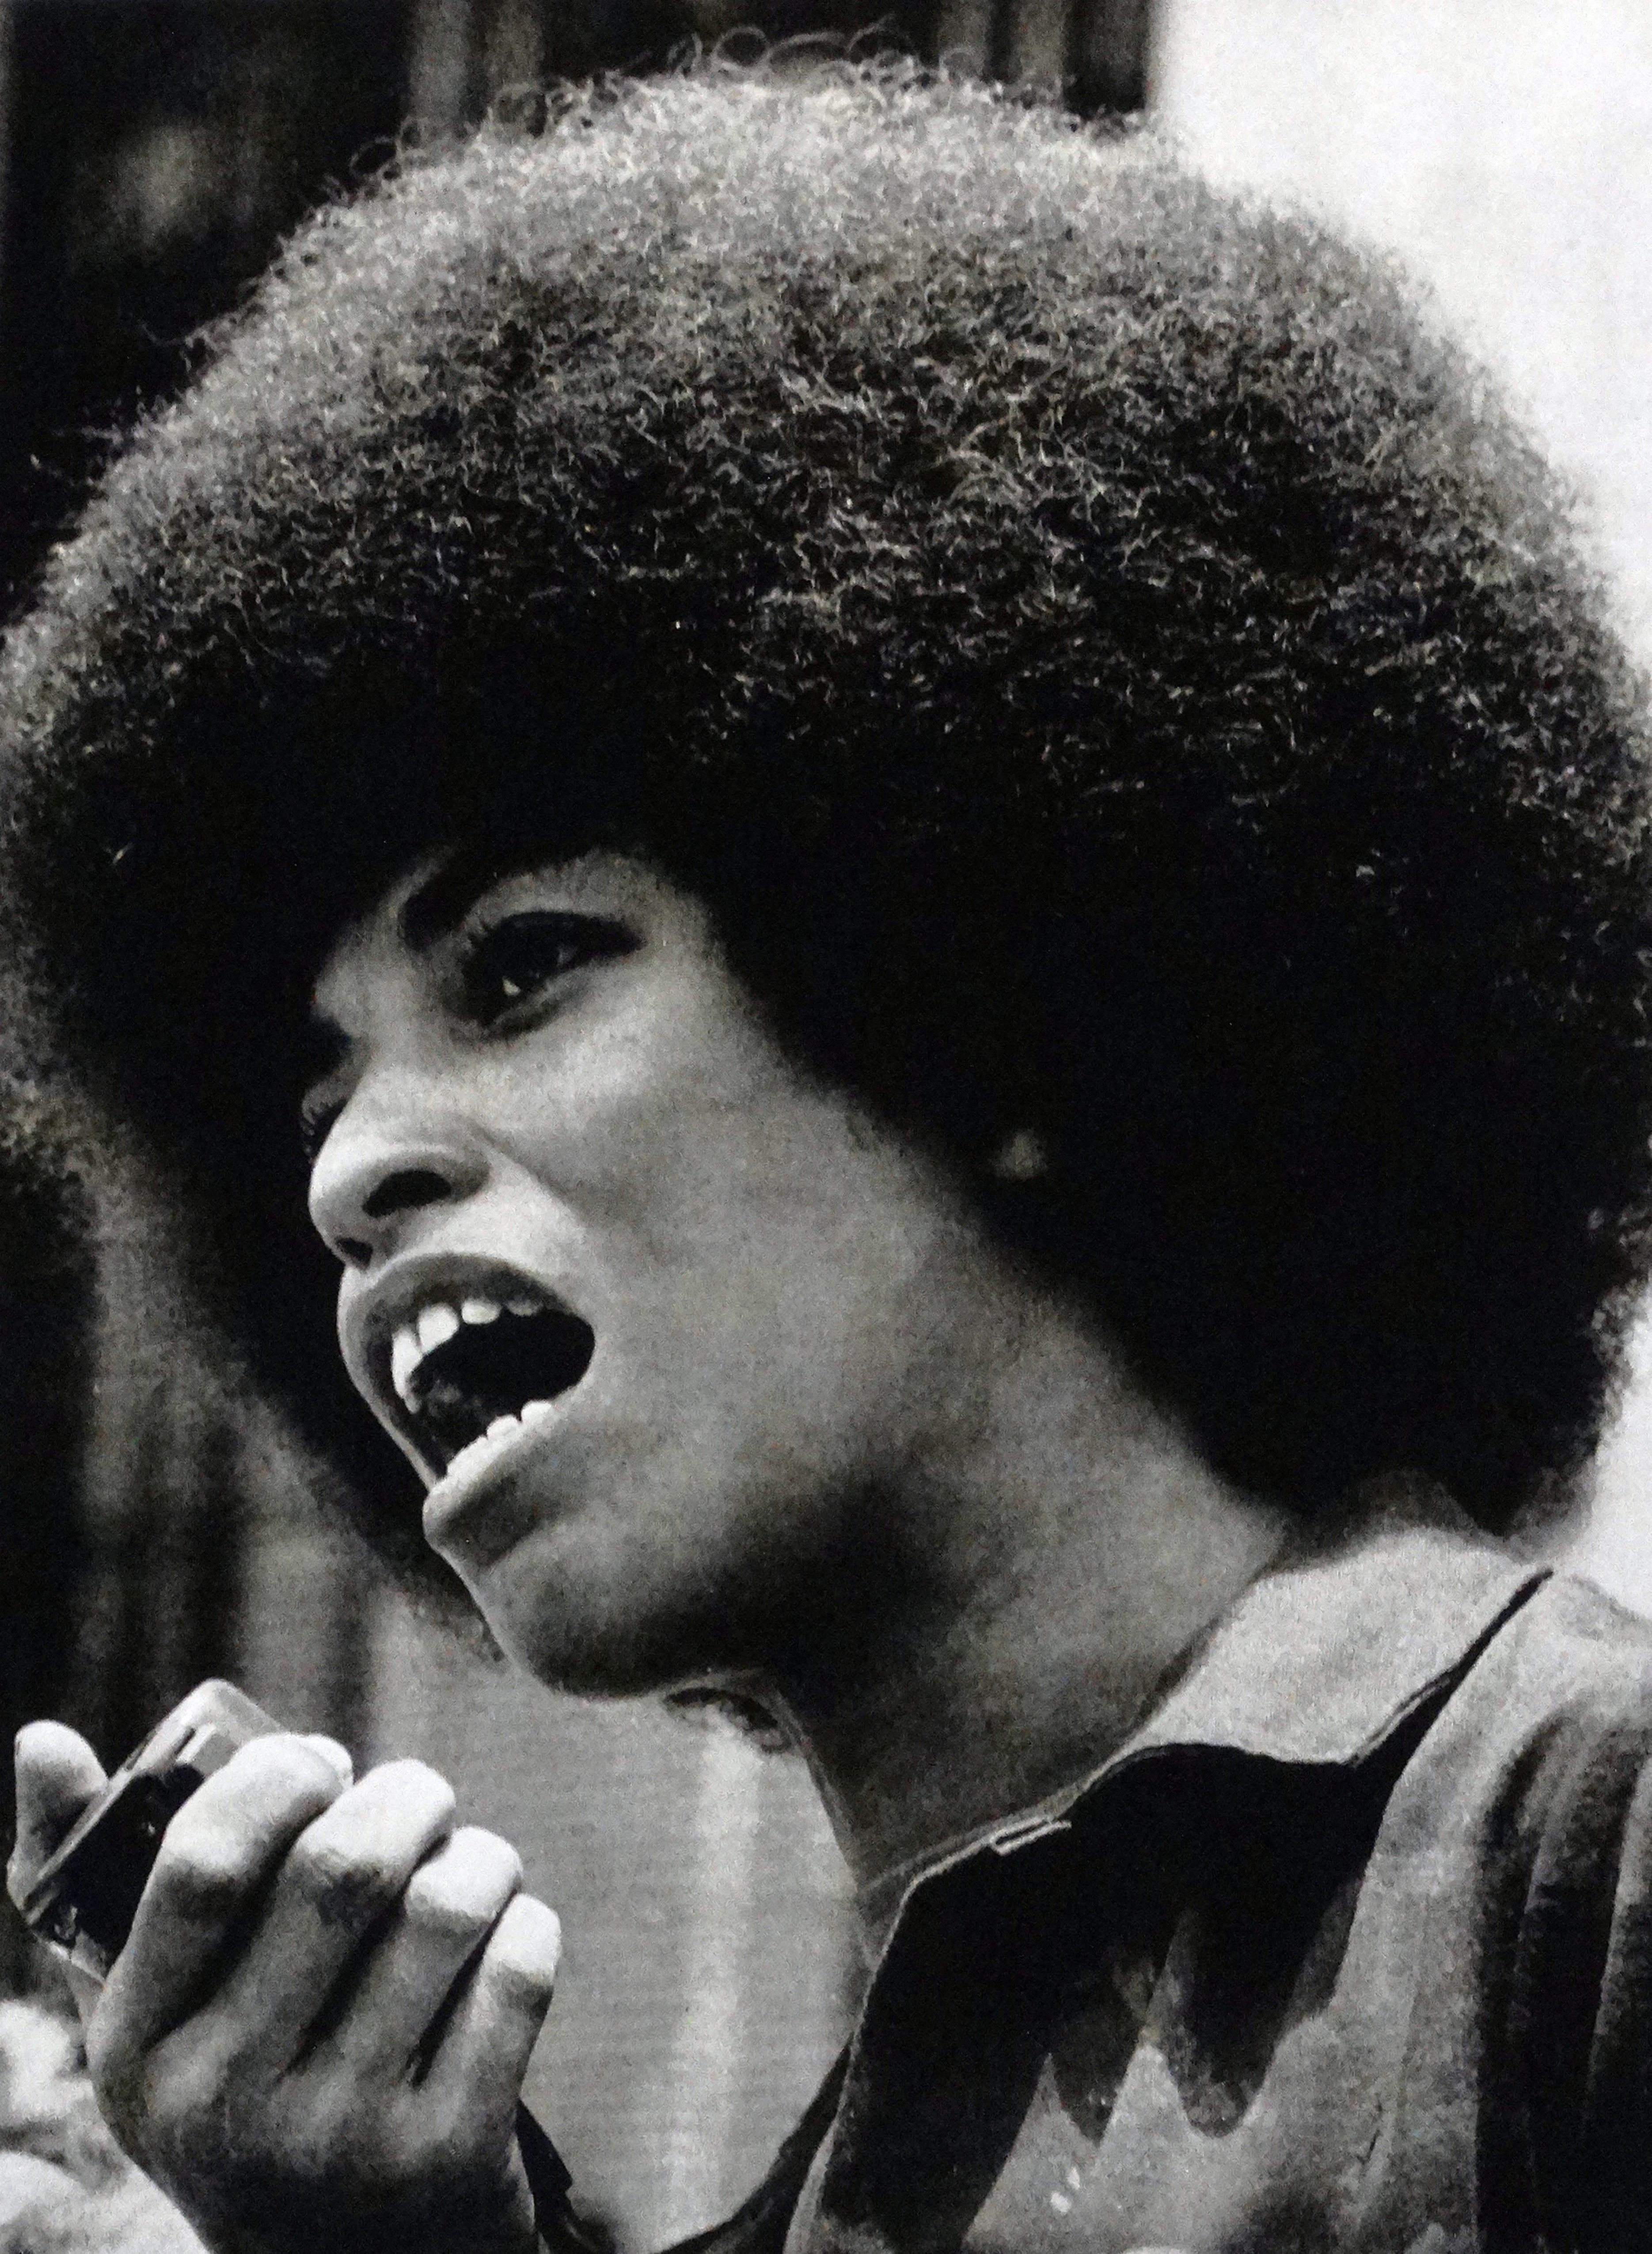 Angela Davis, American political activist, scholar and author. She emerged as a prominent countercultural activist and radical in the 1960's as a leader of the Communist Party USA. (Photo by: Universal History Archive/UIG via Getty Images)